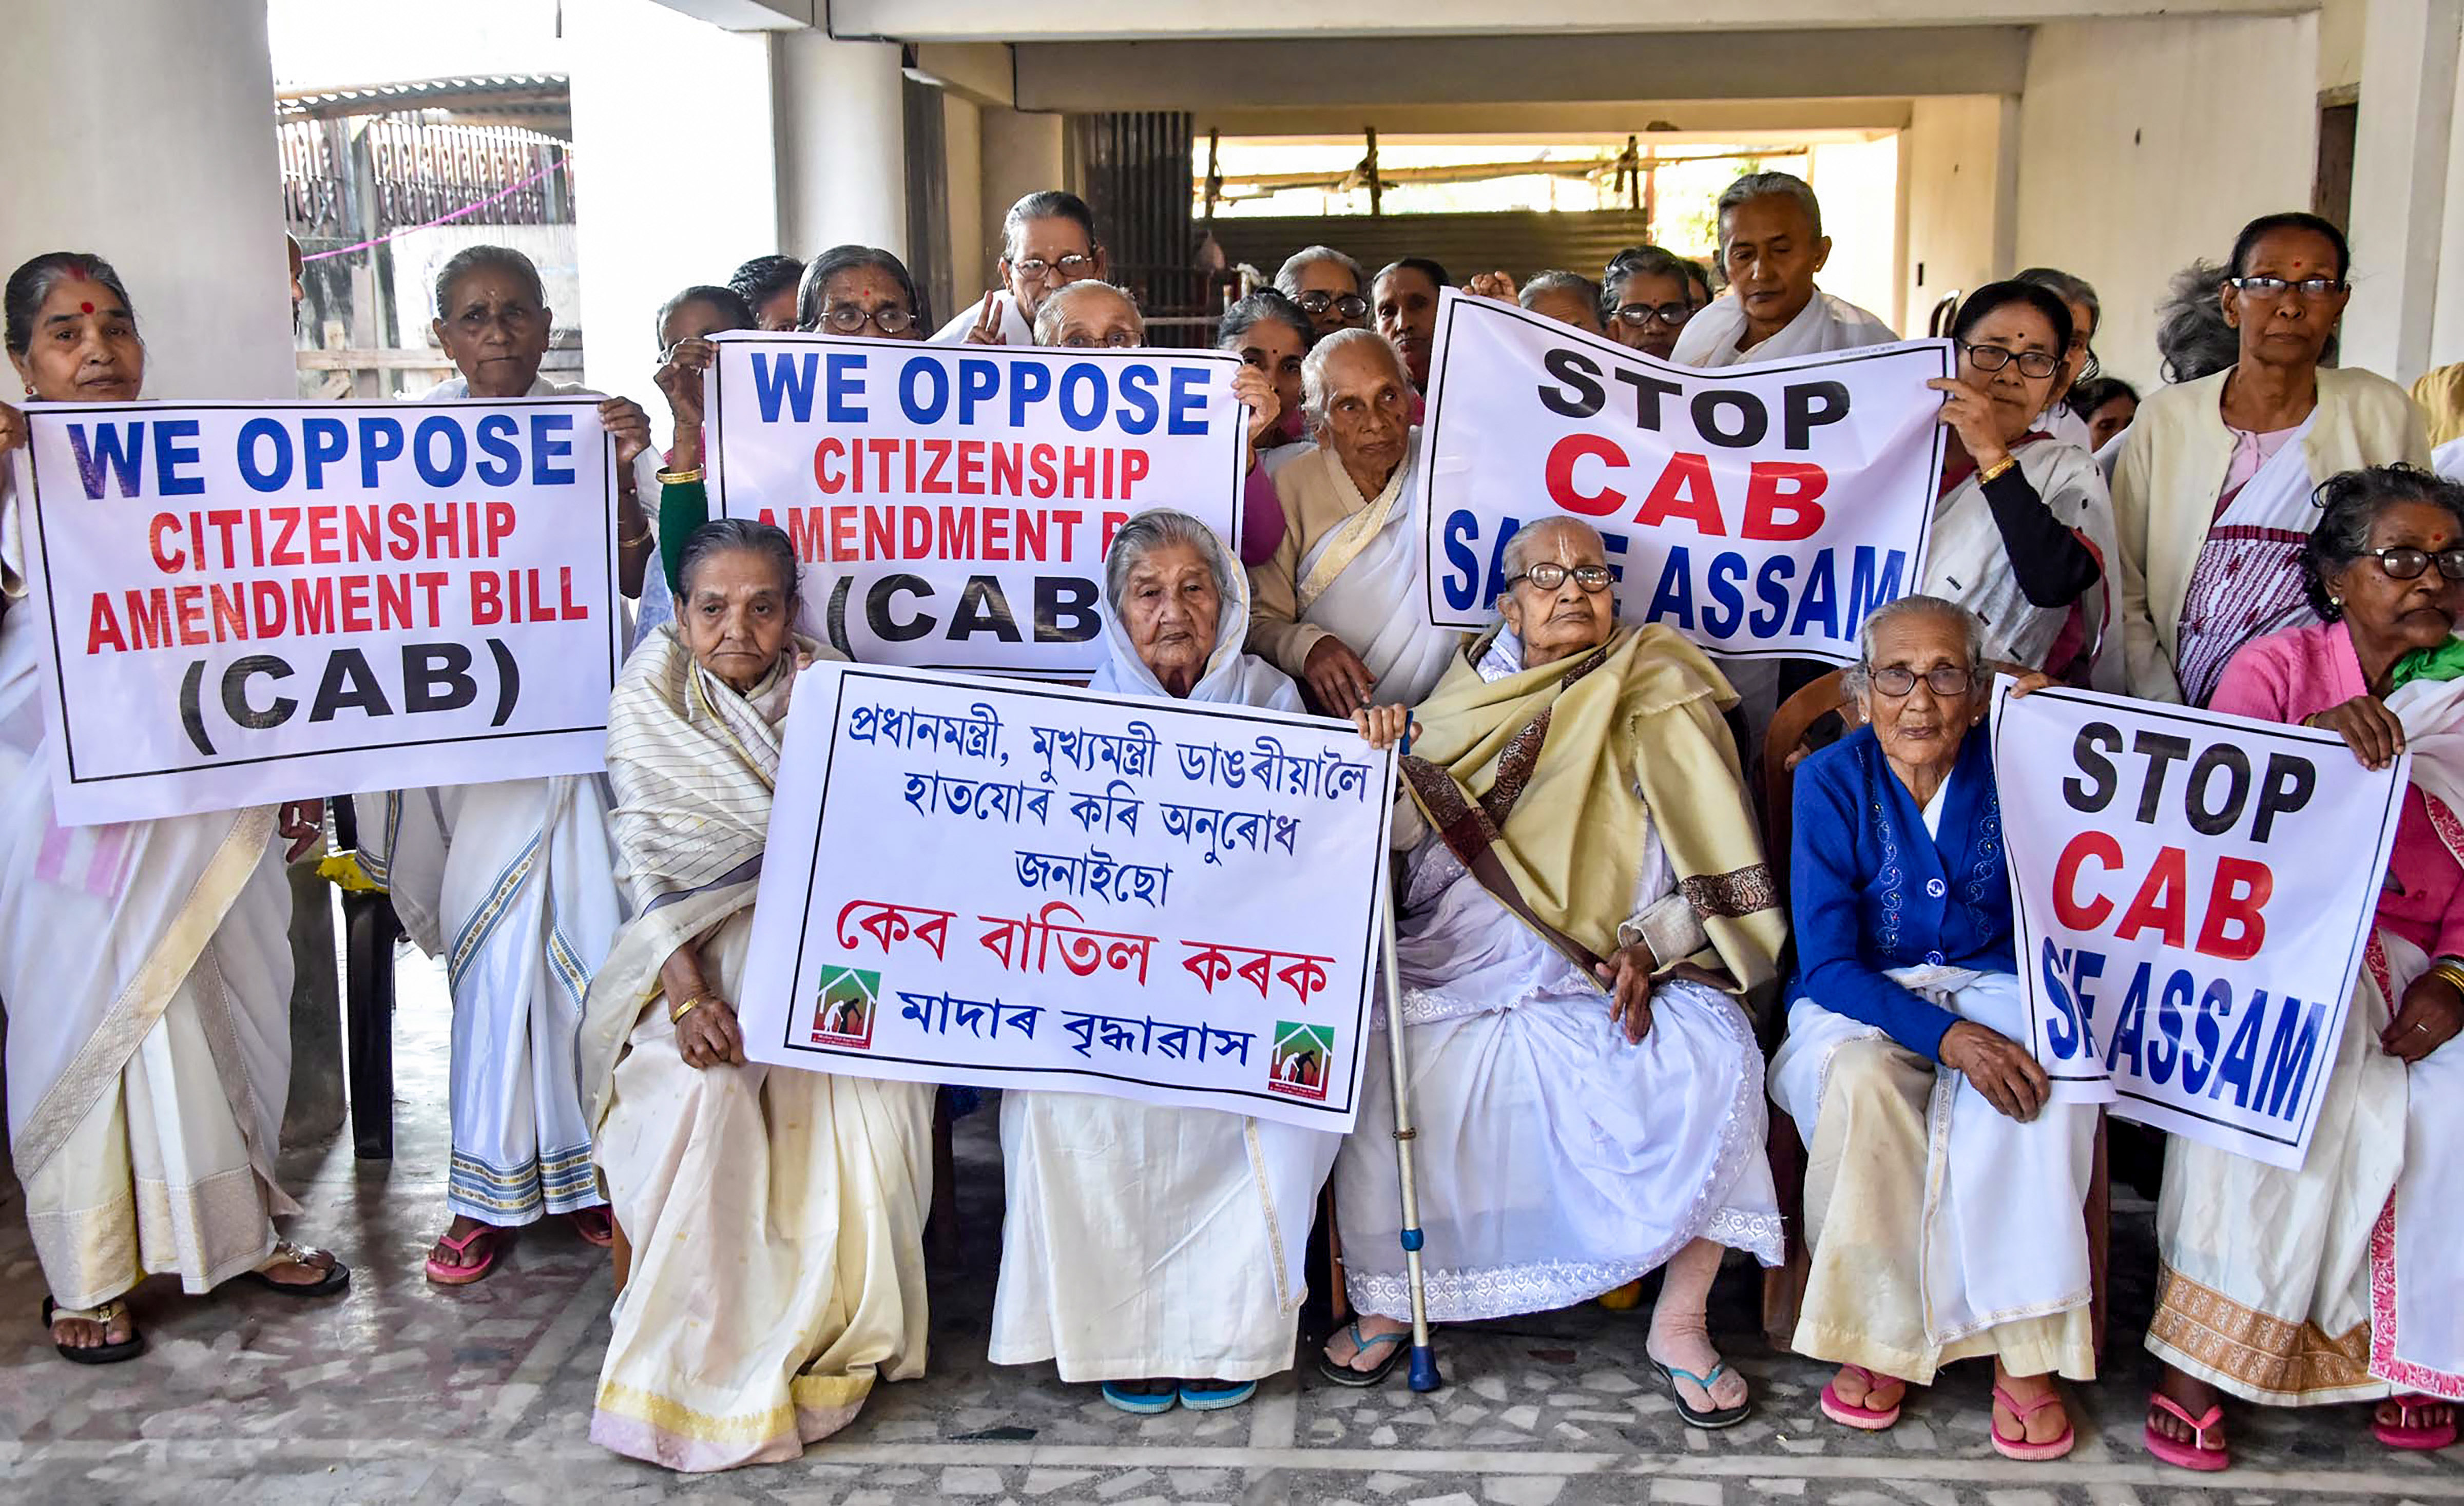 Elderly women from an old-age home take part in a protest against Citizenship (Amendent) Bill, in Guwahati, Monday, December 9, 2019.